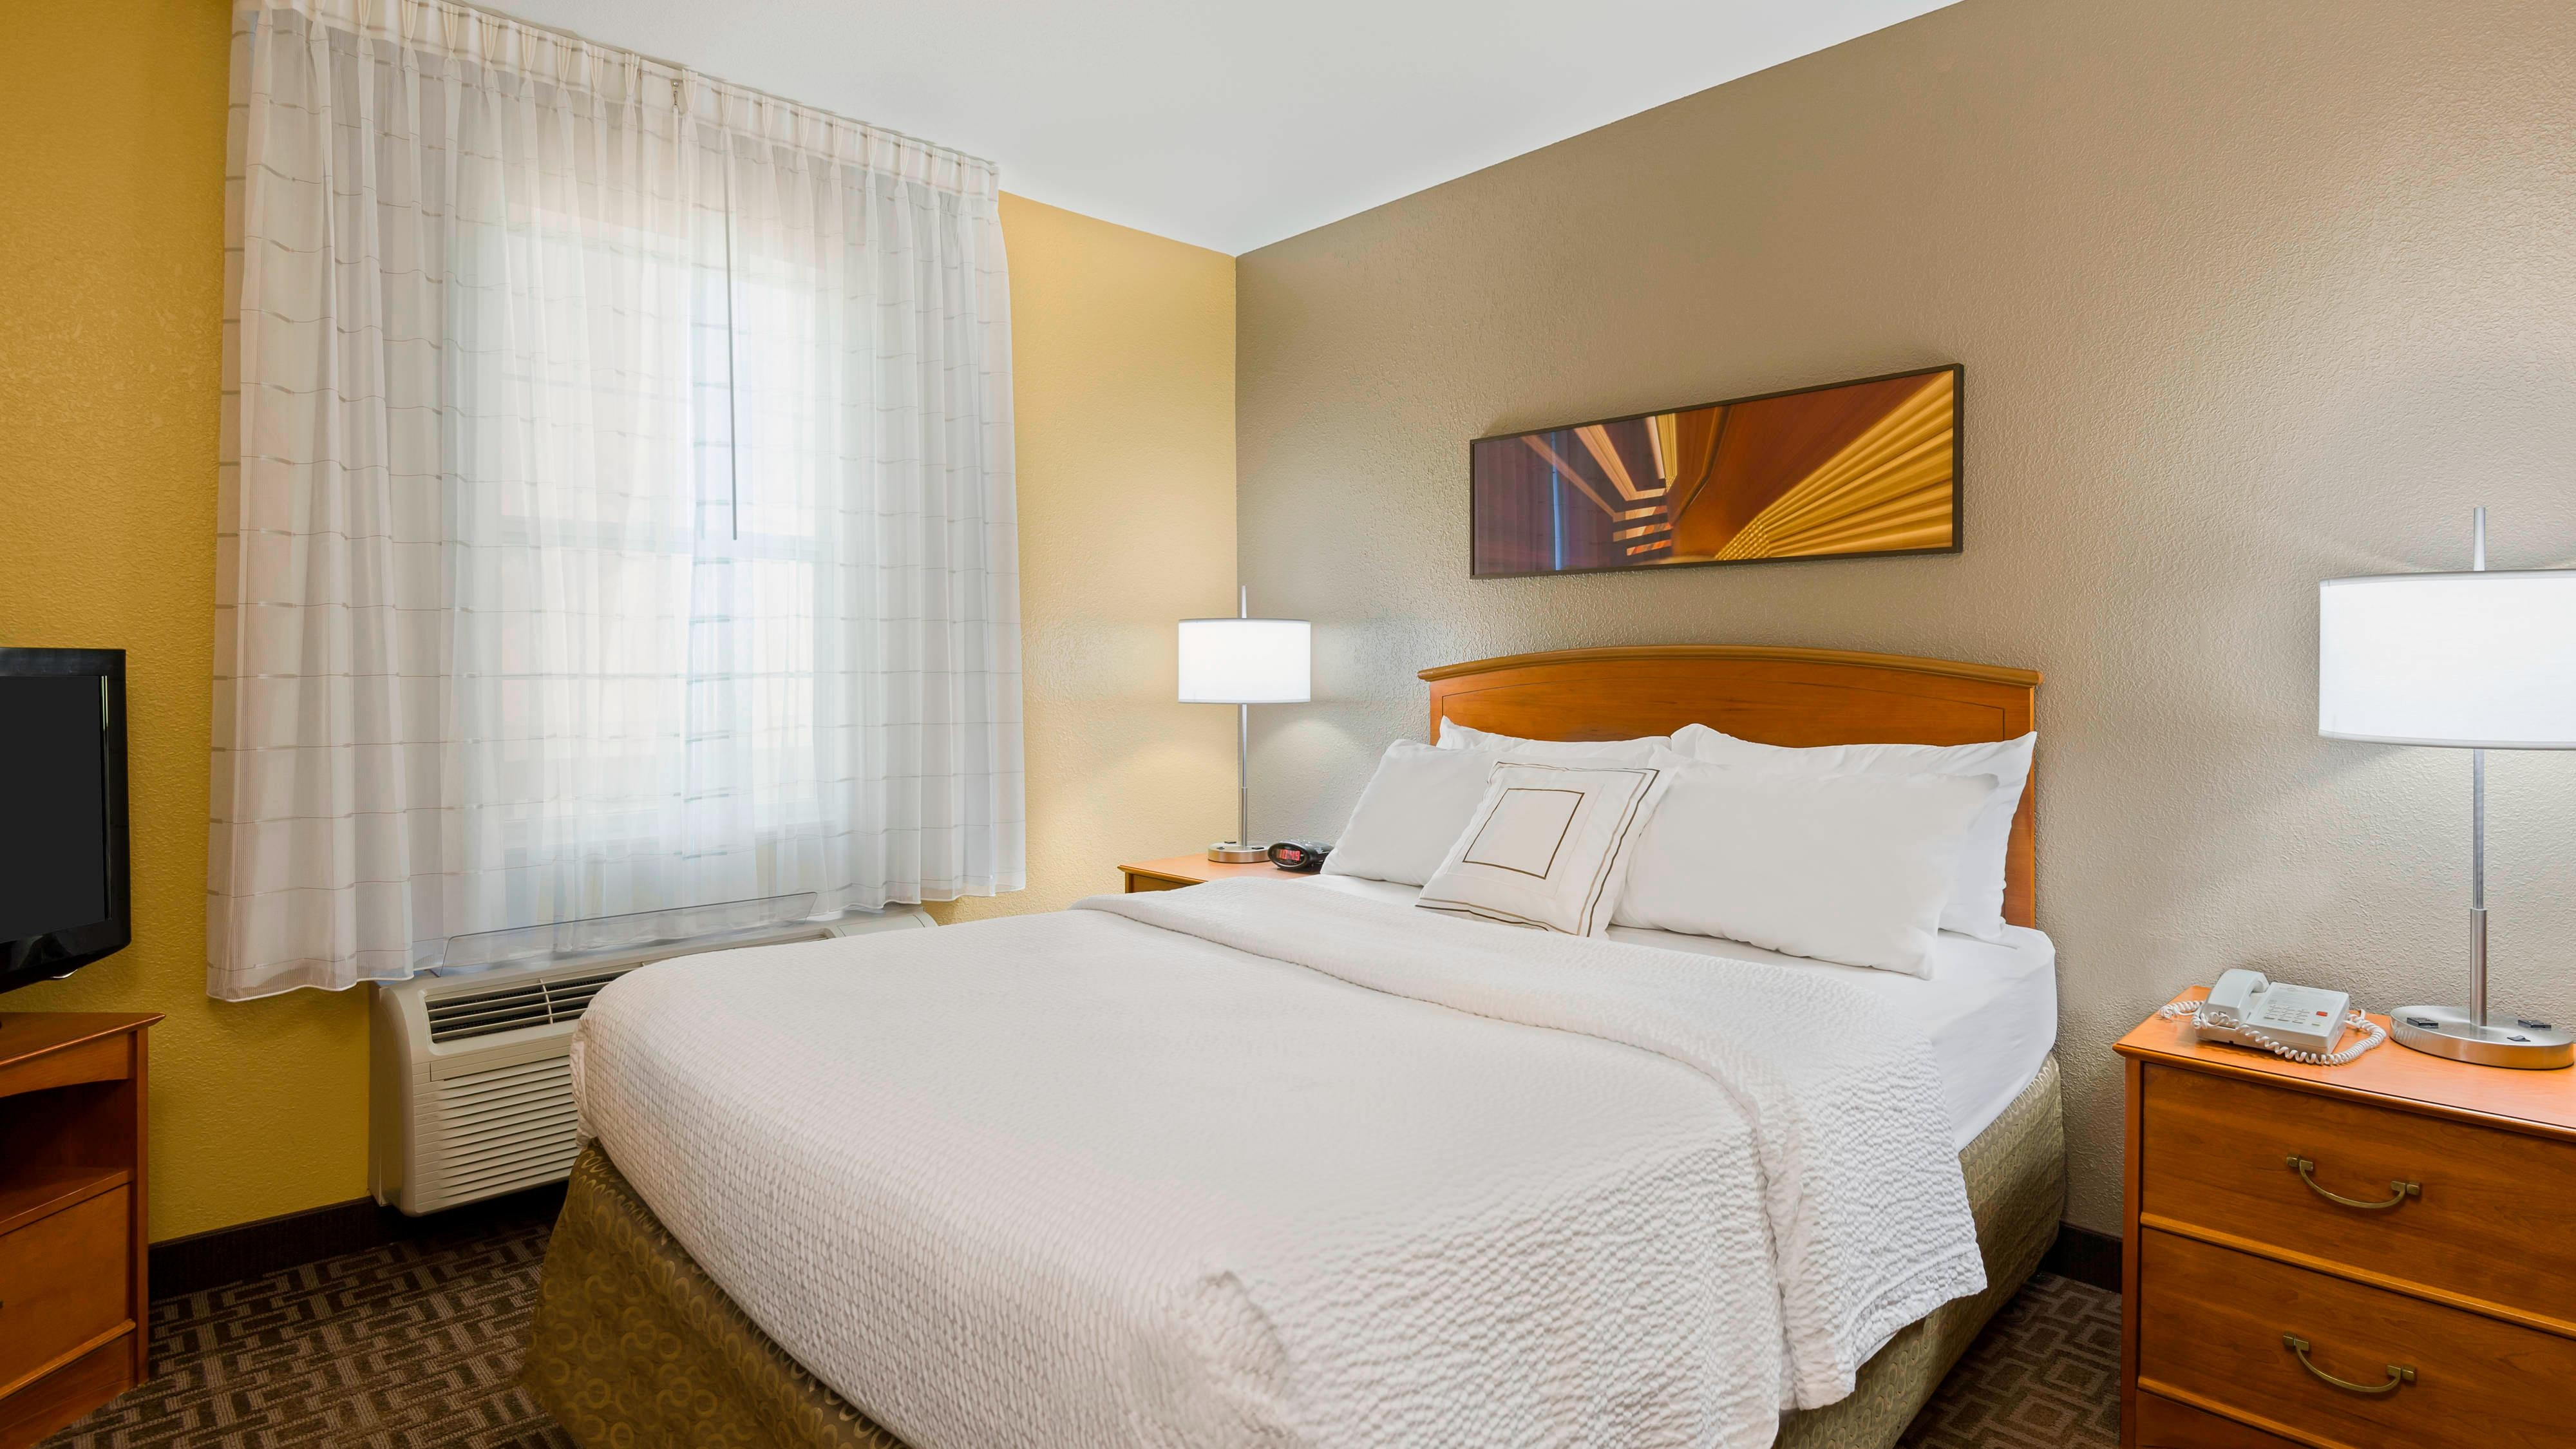 Hotelsuite in Mobile